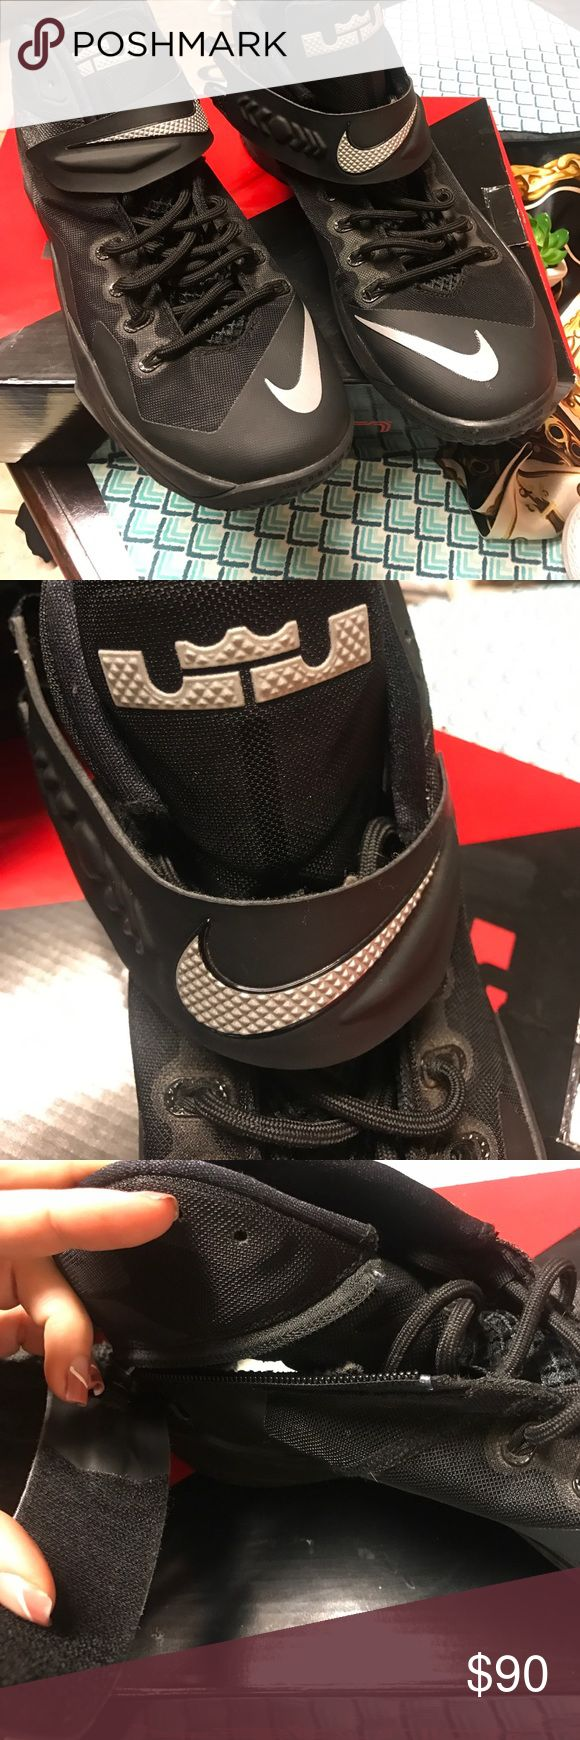 Nike Lebron Zooms VIII All black Nike Lebron zoom soldier VIII. Strap zips up the sides. Like new condition. Comes with box. Nike Shoes Sneakers